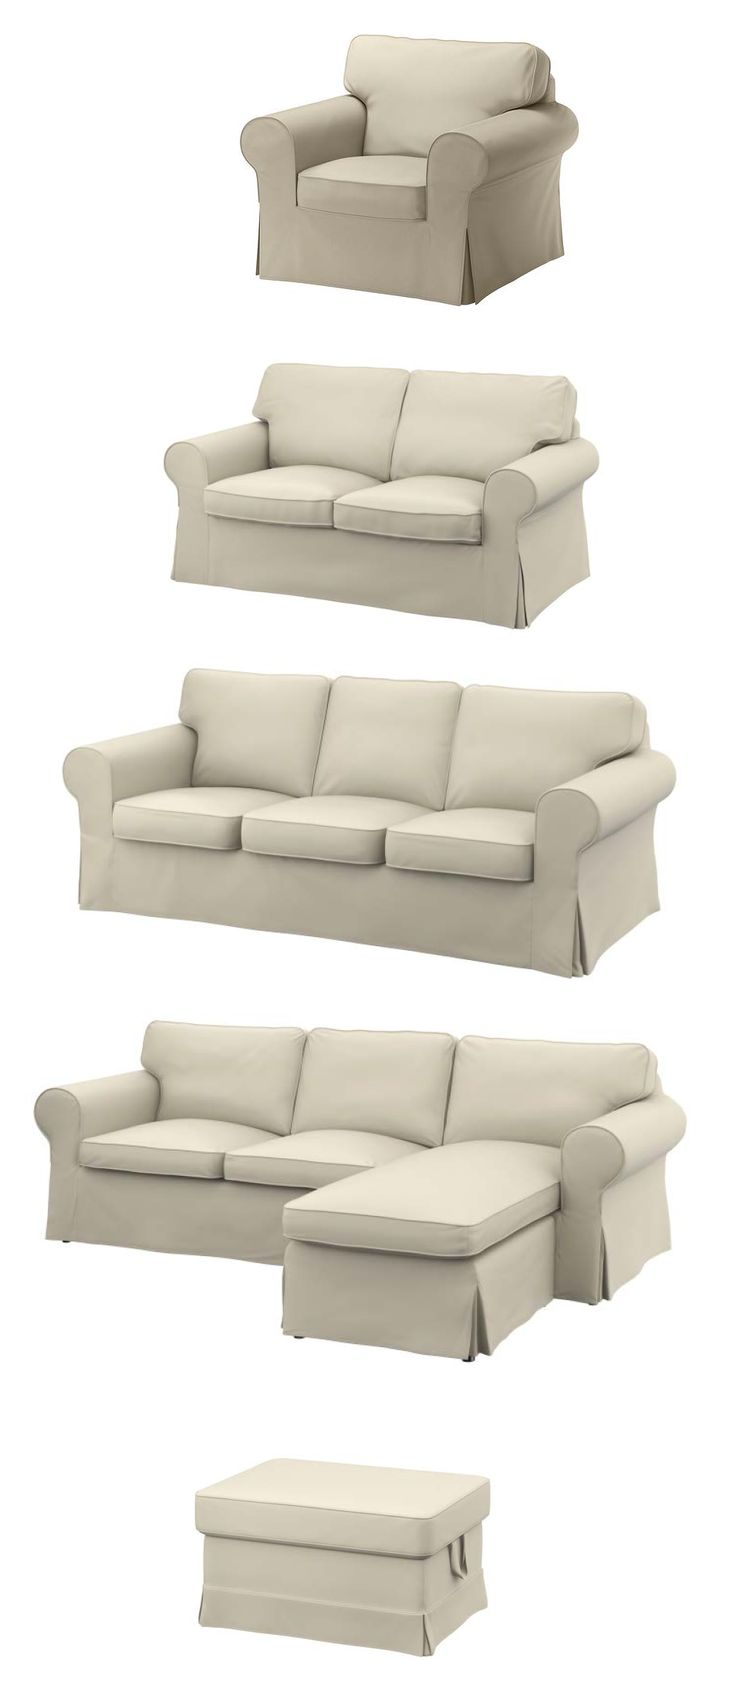 Strong seams changeable covers and seat backs you can flip to even out wear.  sc 1 st  Pinterest : ikea ektorp sectional sofa - Sectionals, Sofas & Couches